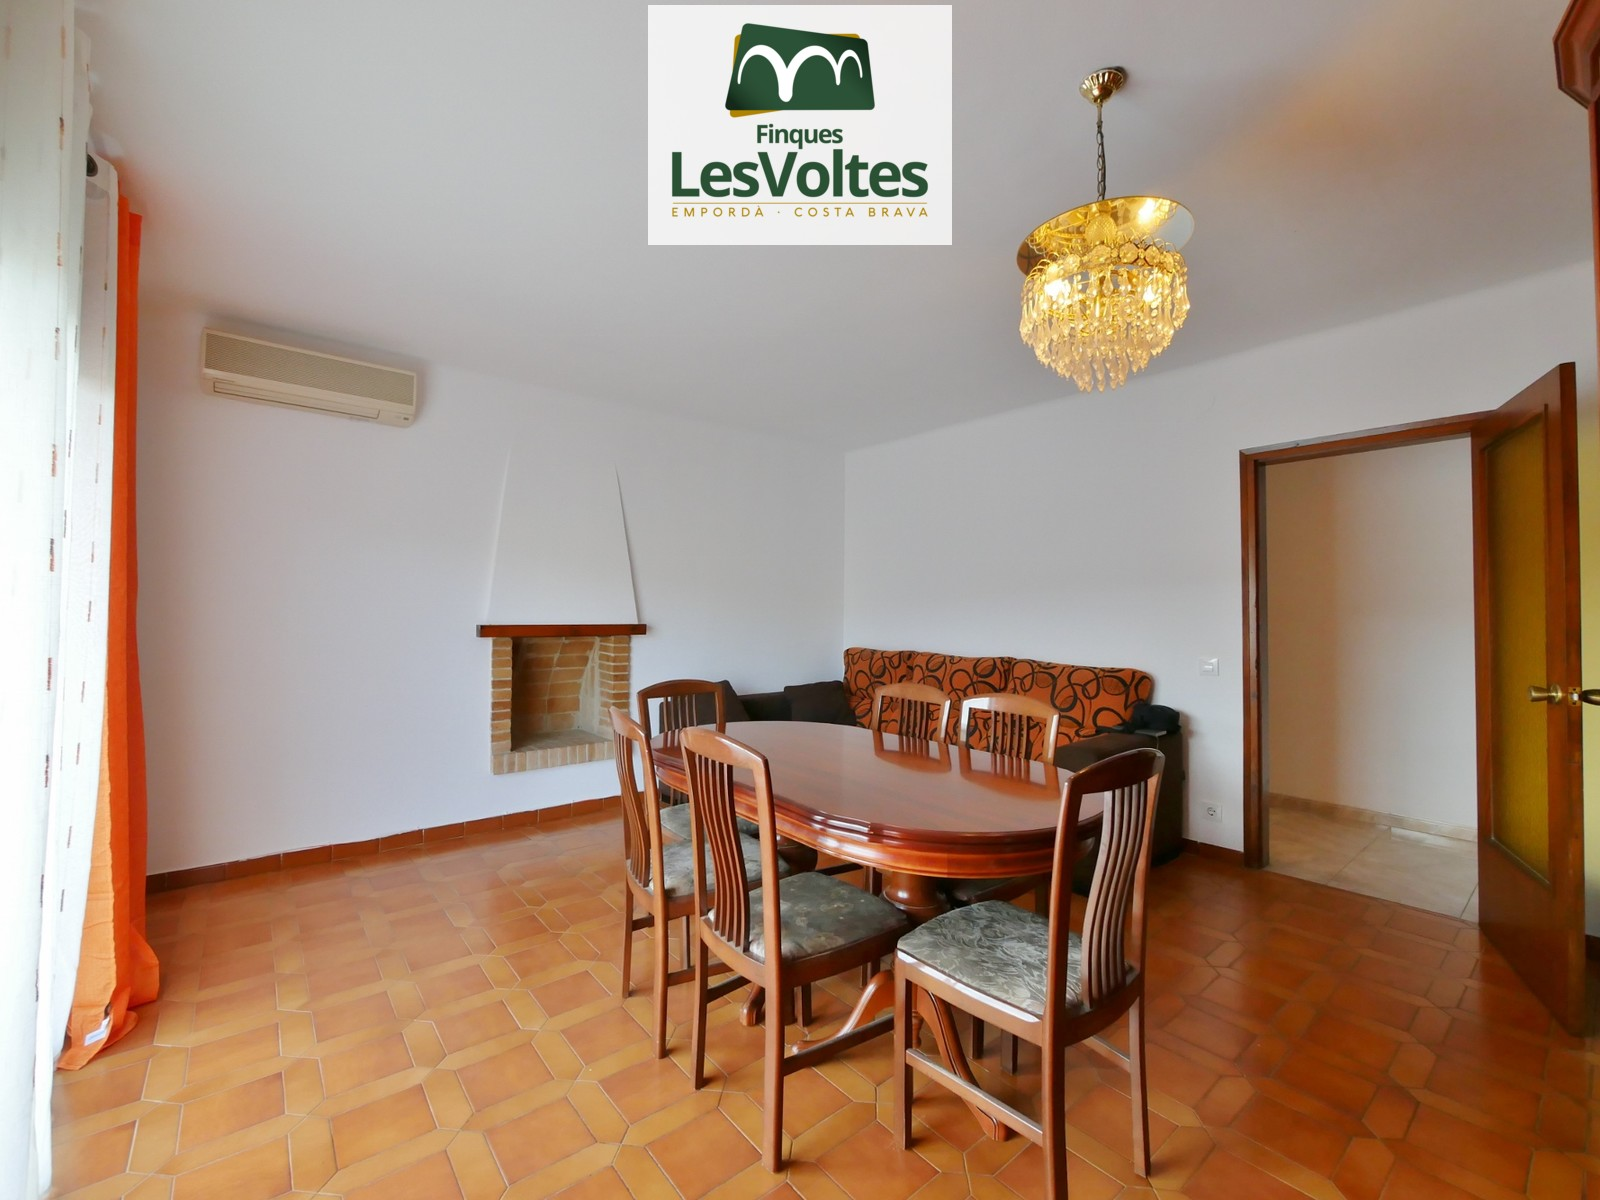 95 M2 APARTMENT ON THE FIRST FLOOR WITHOUT ELEVATOR, WITH 3 BEDROOMS AND TERRACES FOR RENT IN LA BISBAL.